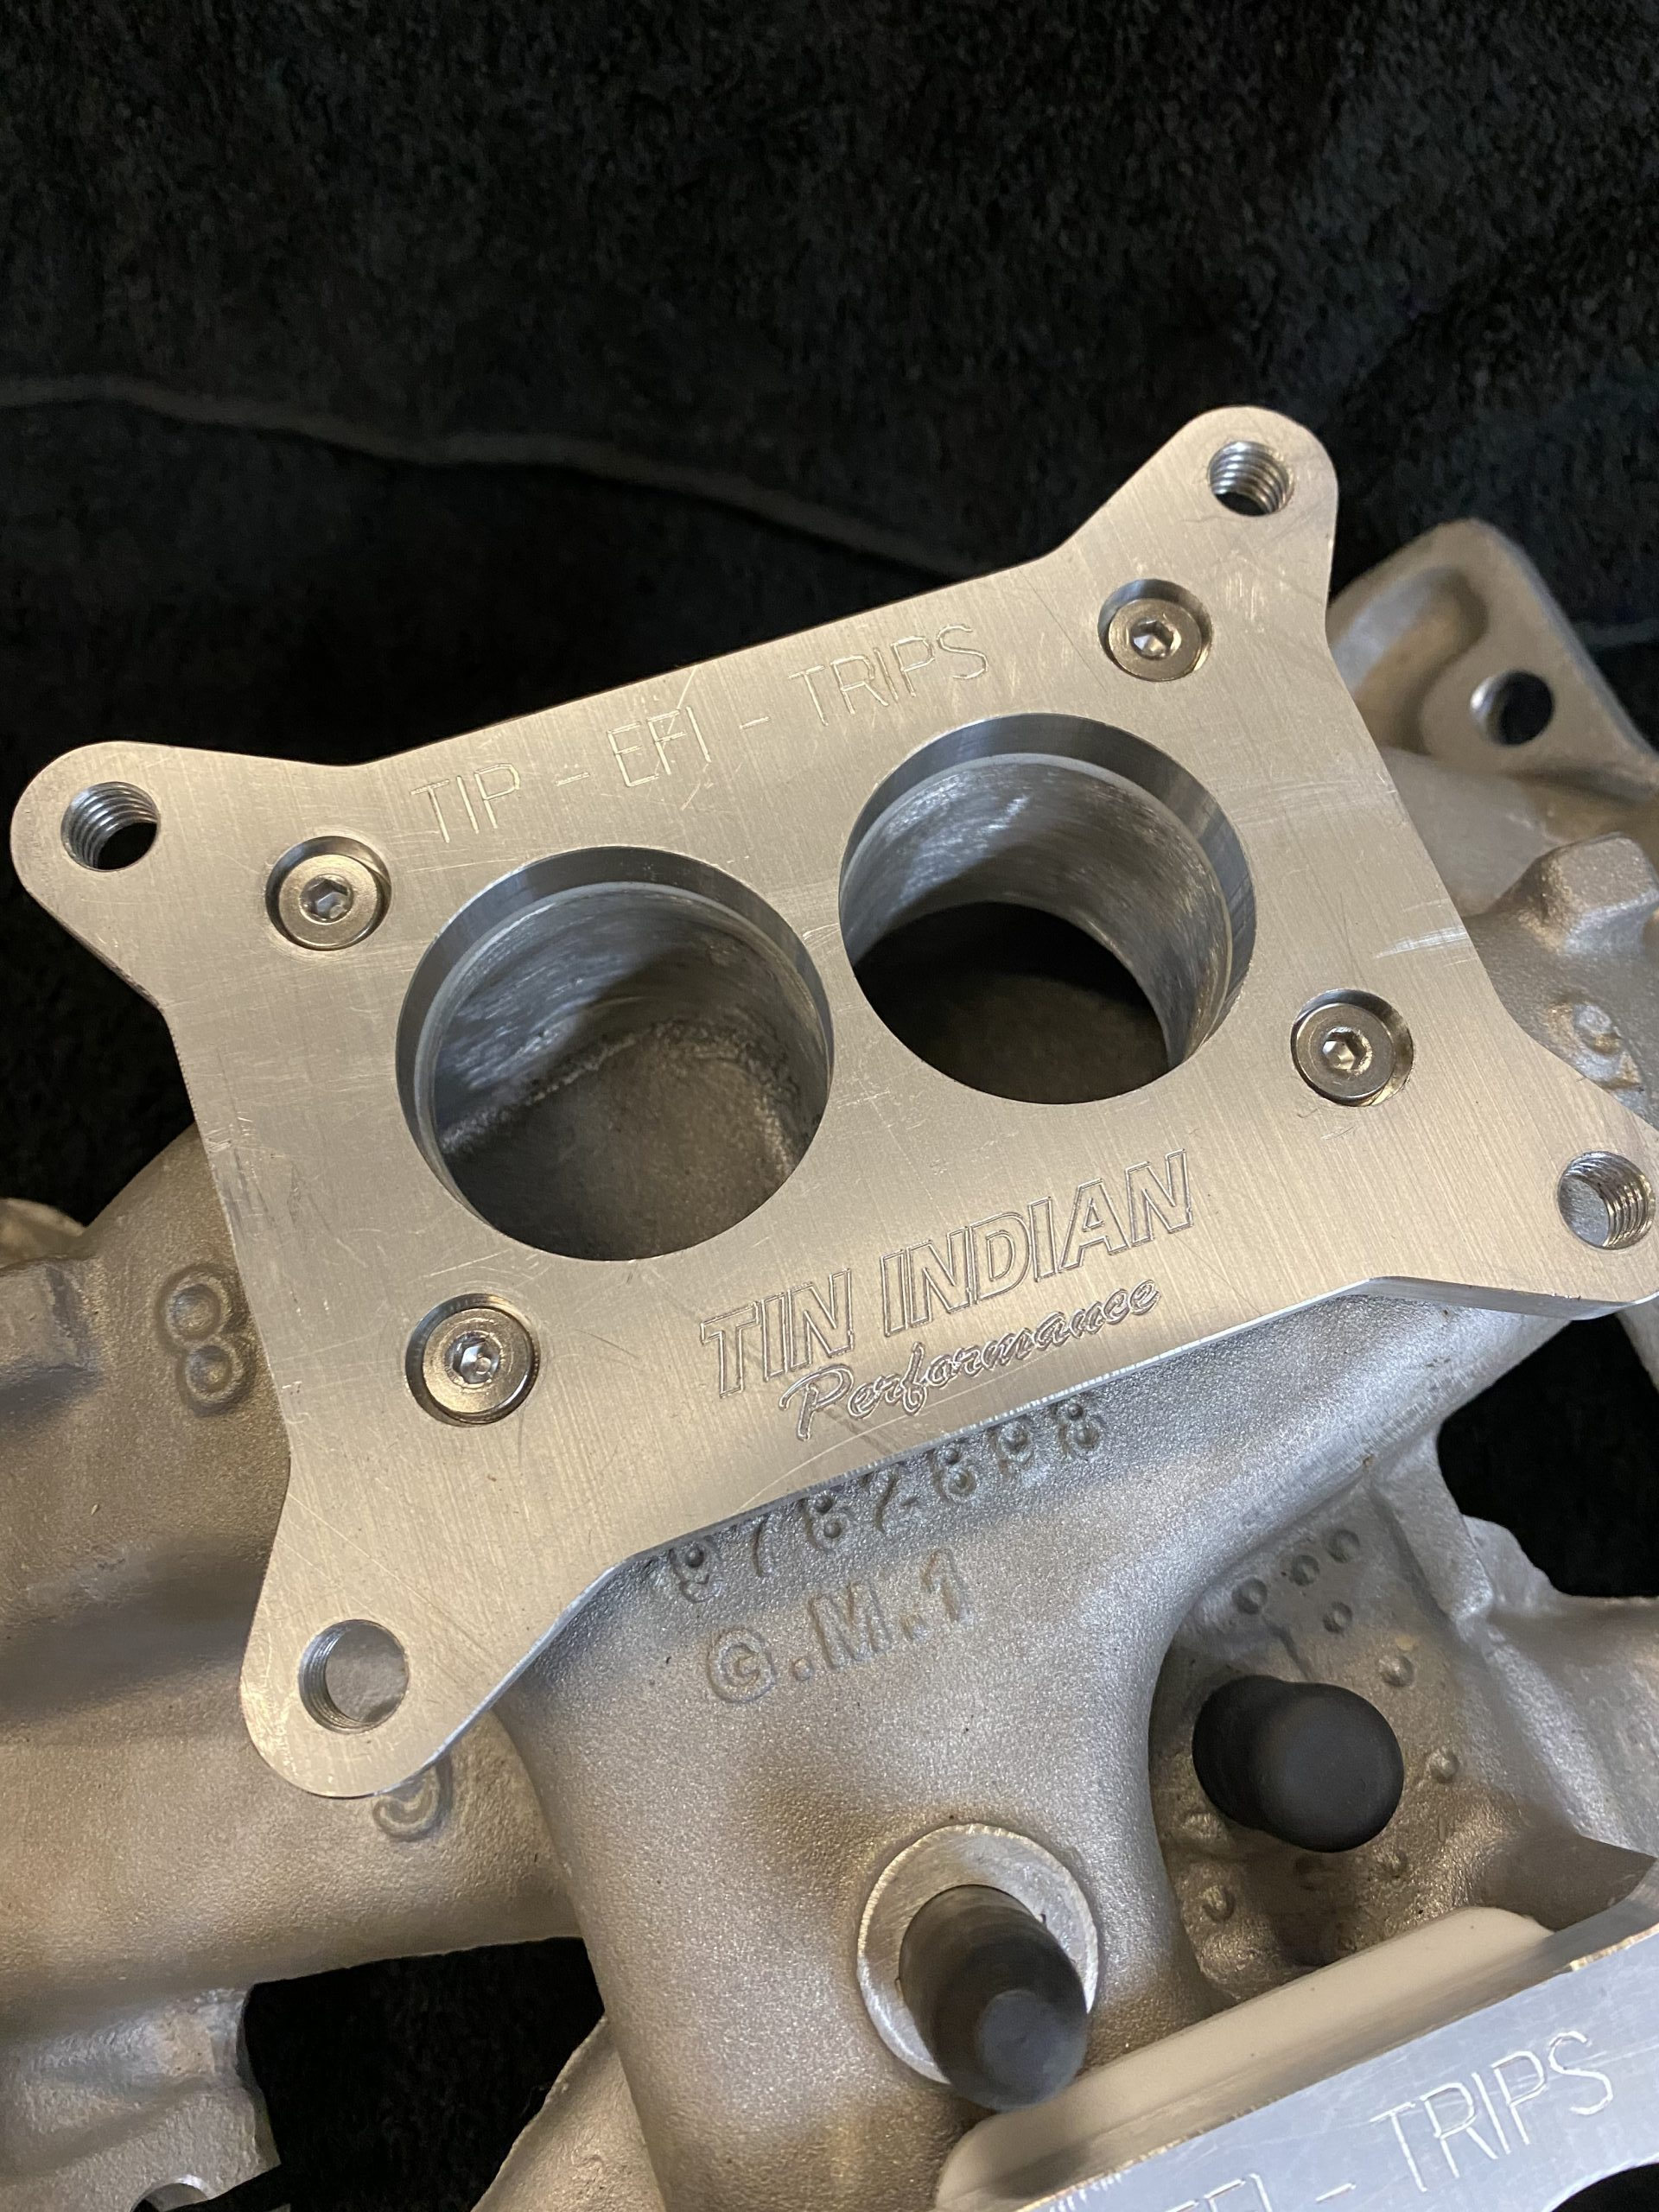 TIP EFI Trips carb adapter